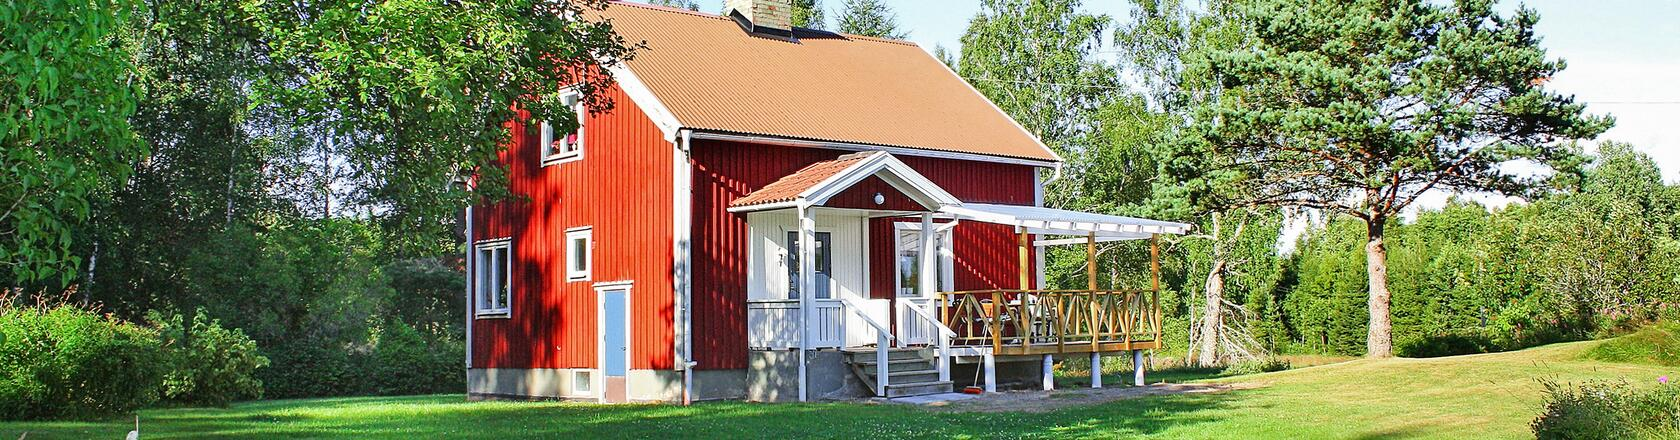 Värmlandsnäs in Sweden - Rent a holiday home  with DanCenter